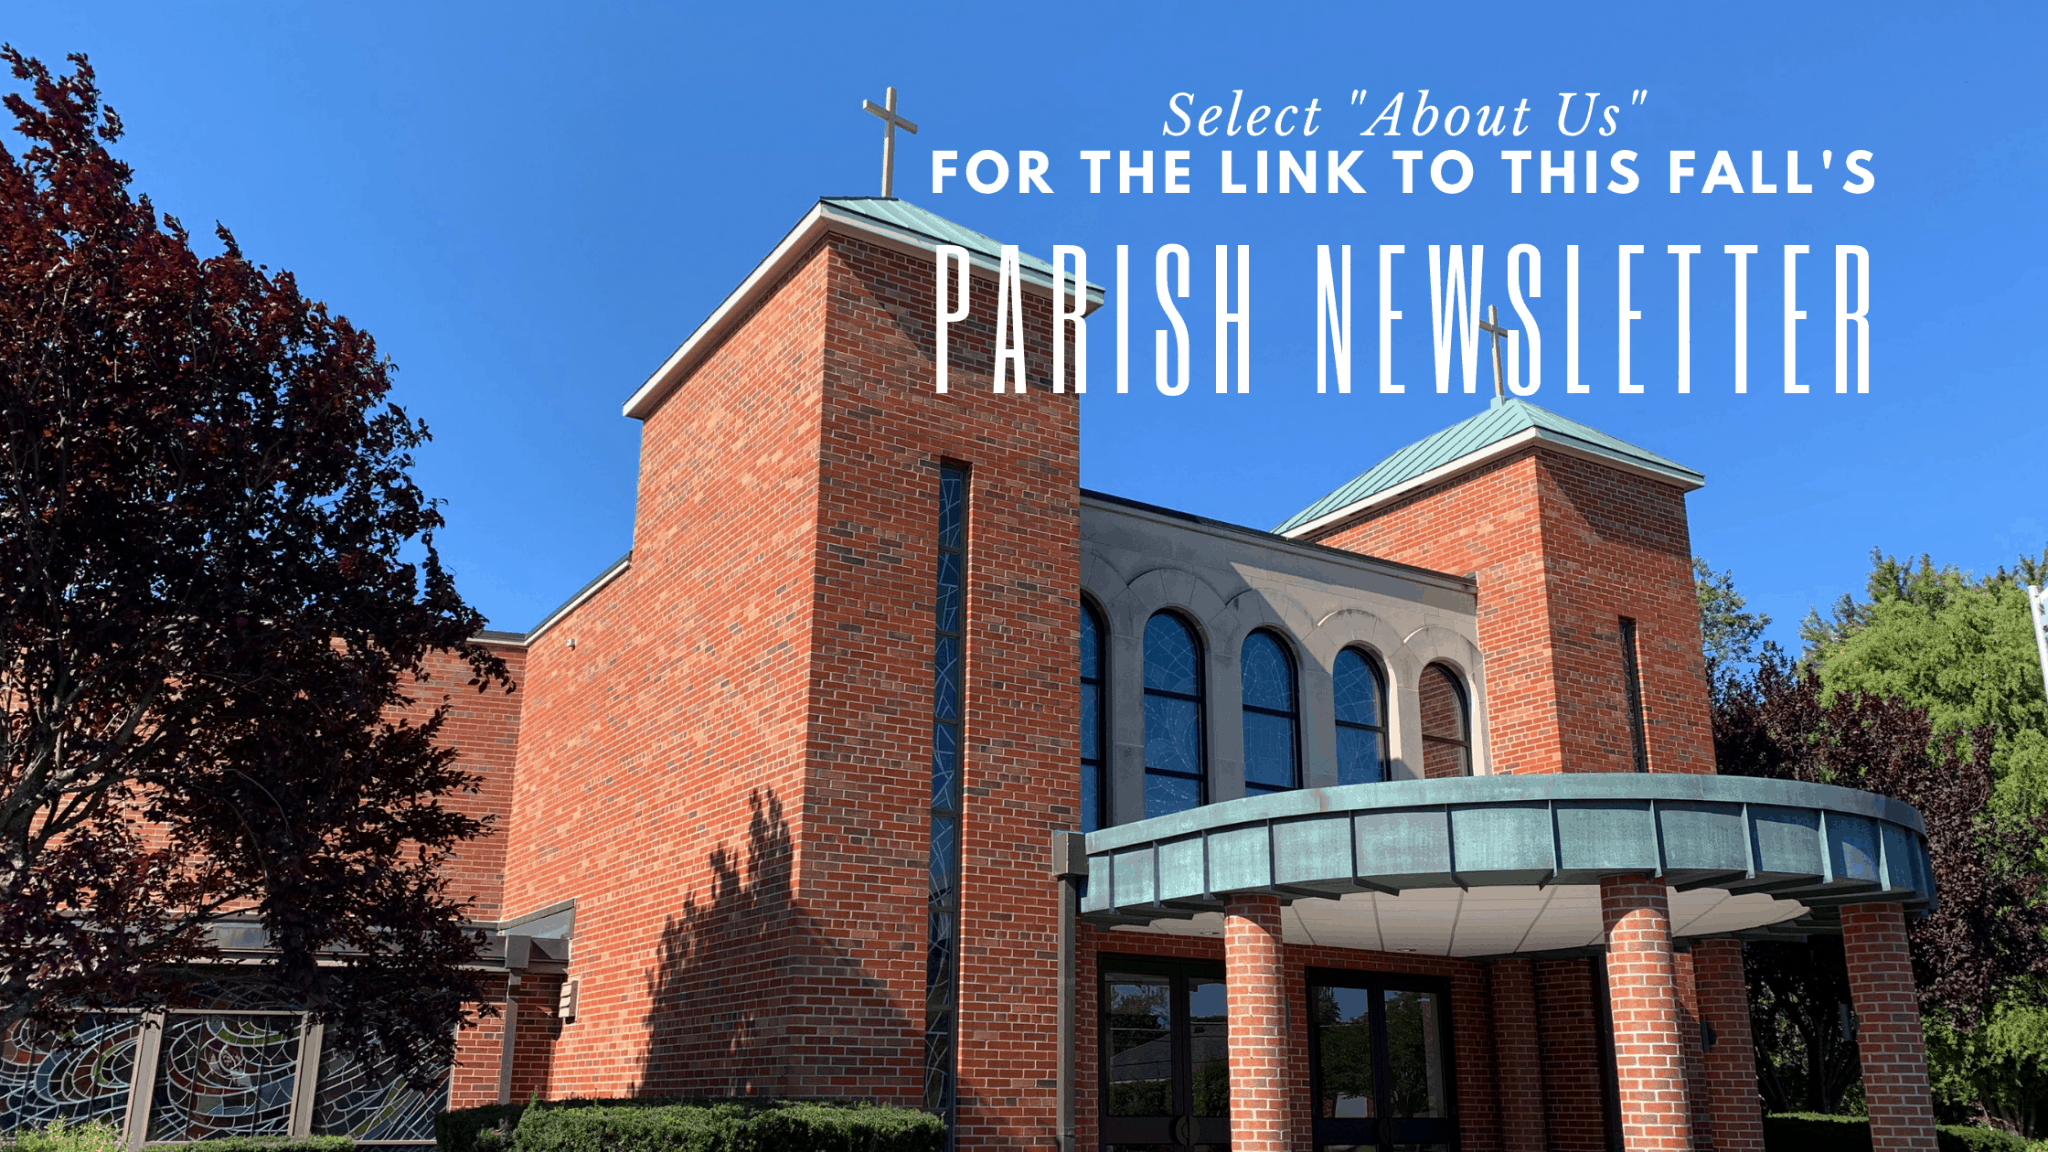 Church-Slider-Parish-Newsletter-1